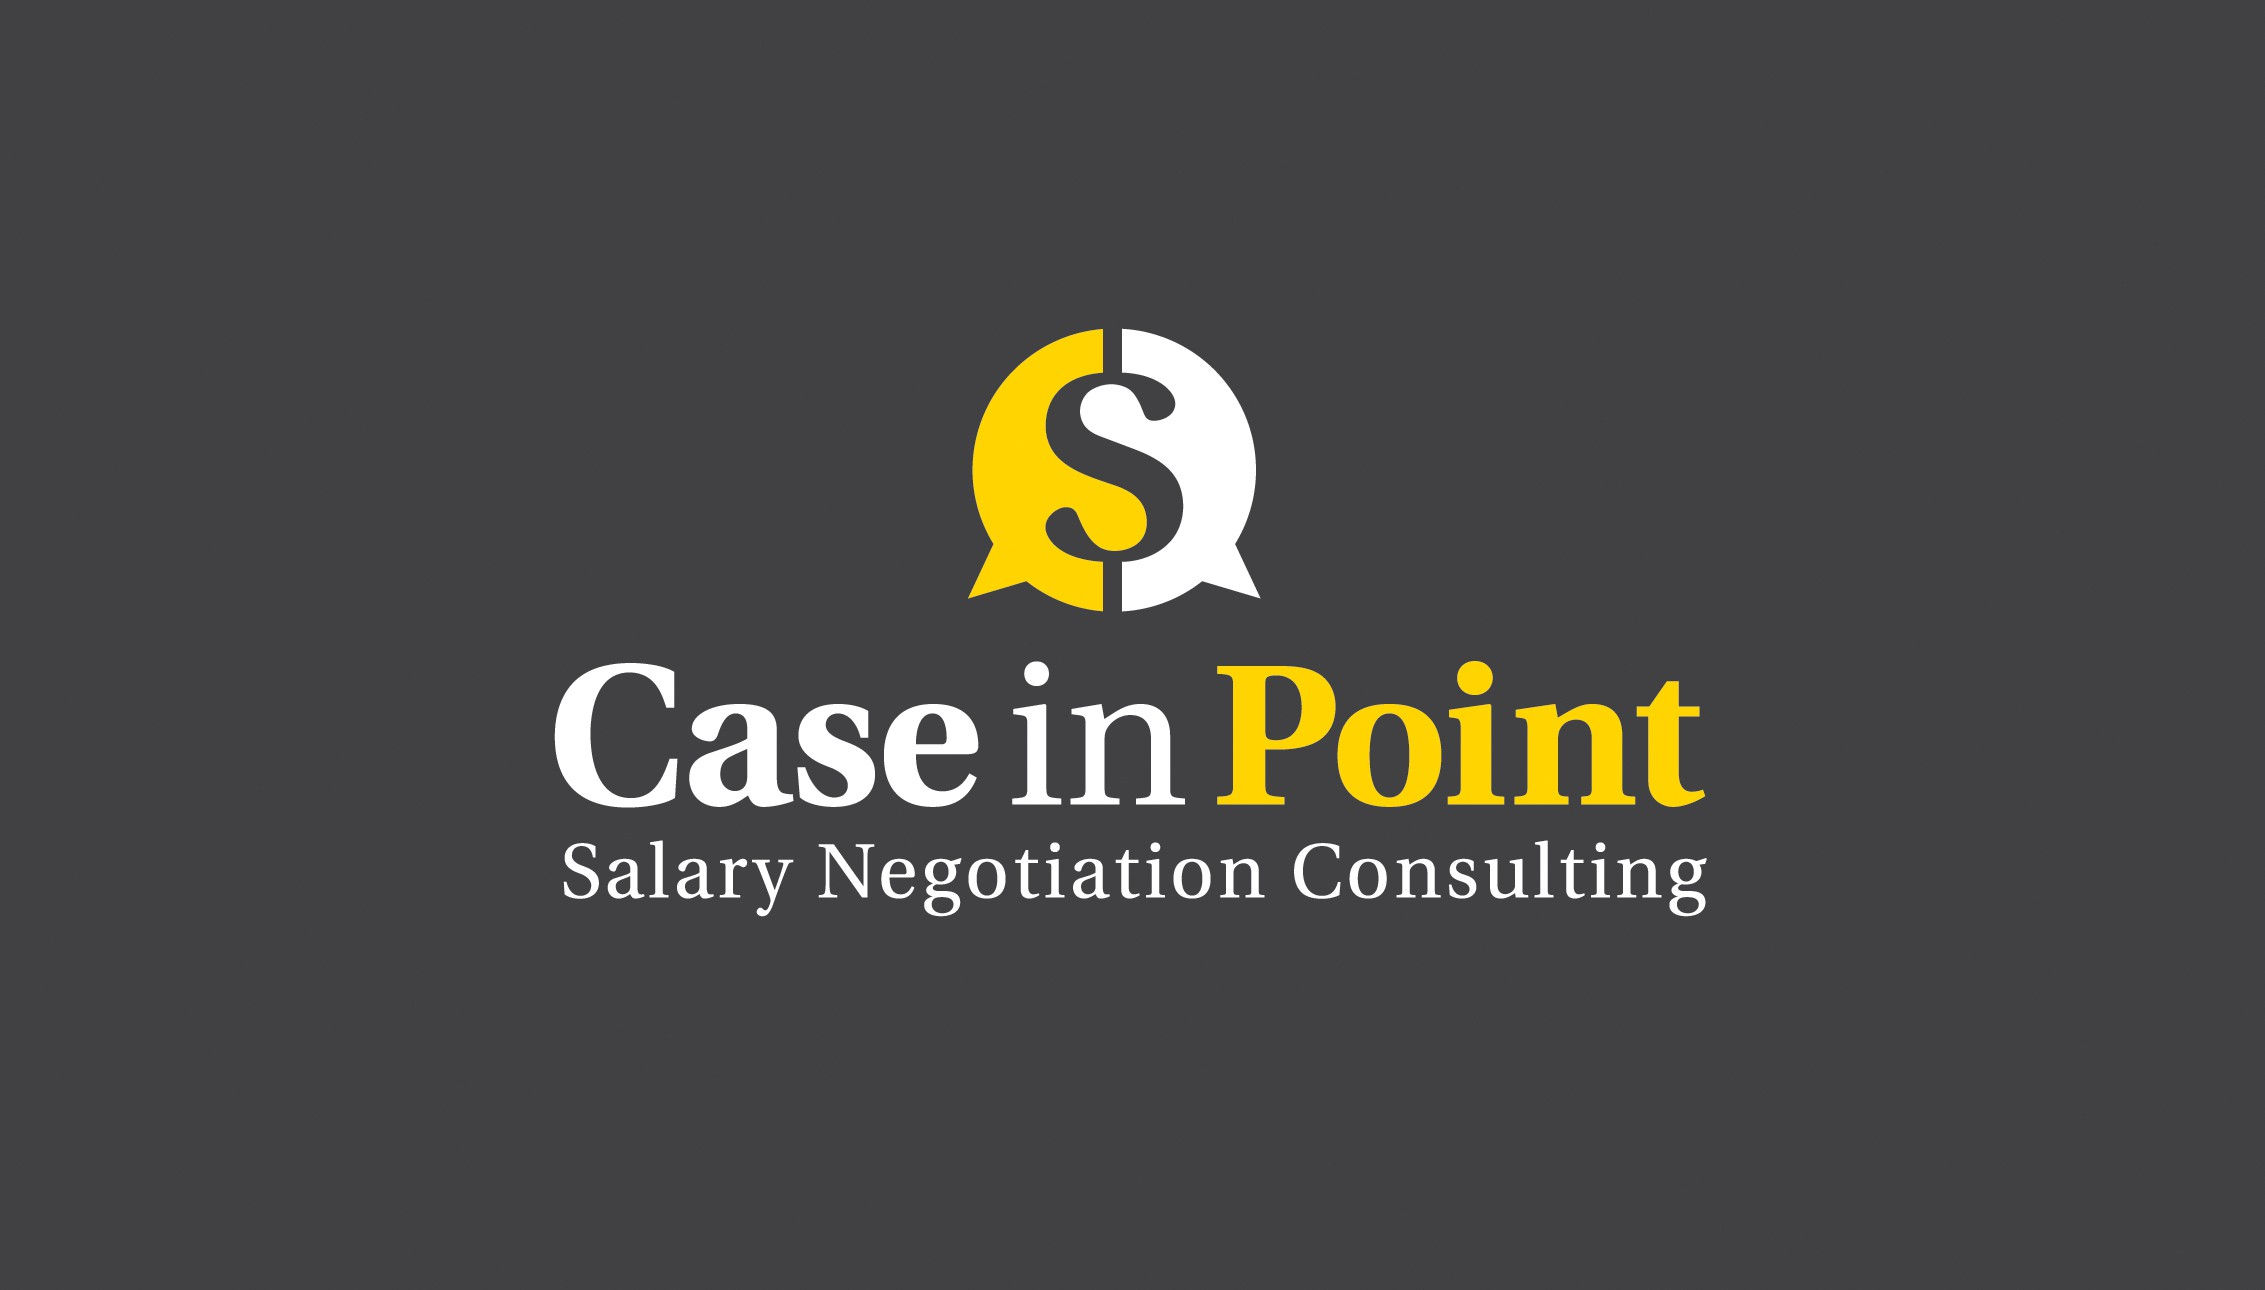 Create a clean, classic logo for salary negotiation consulting business.